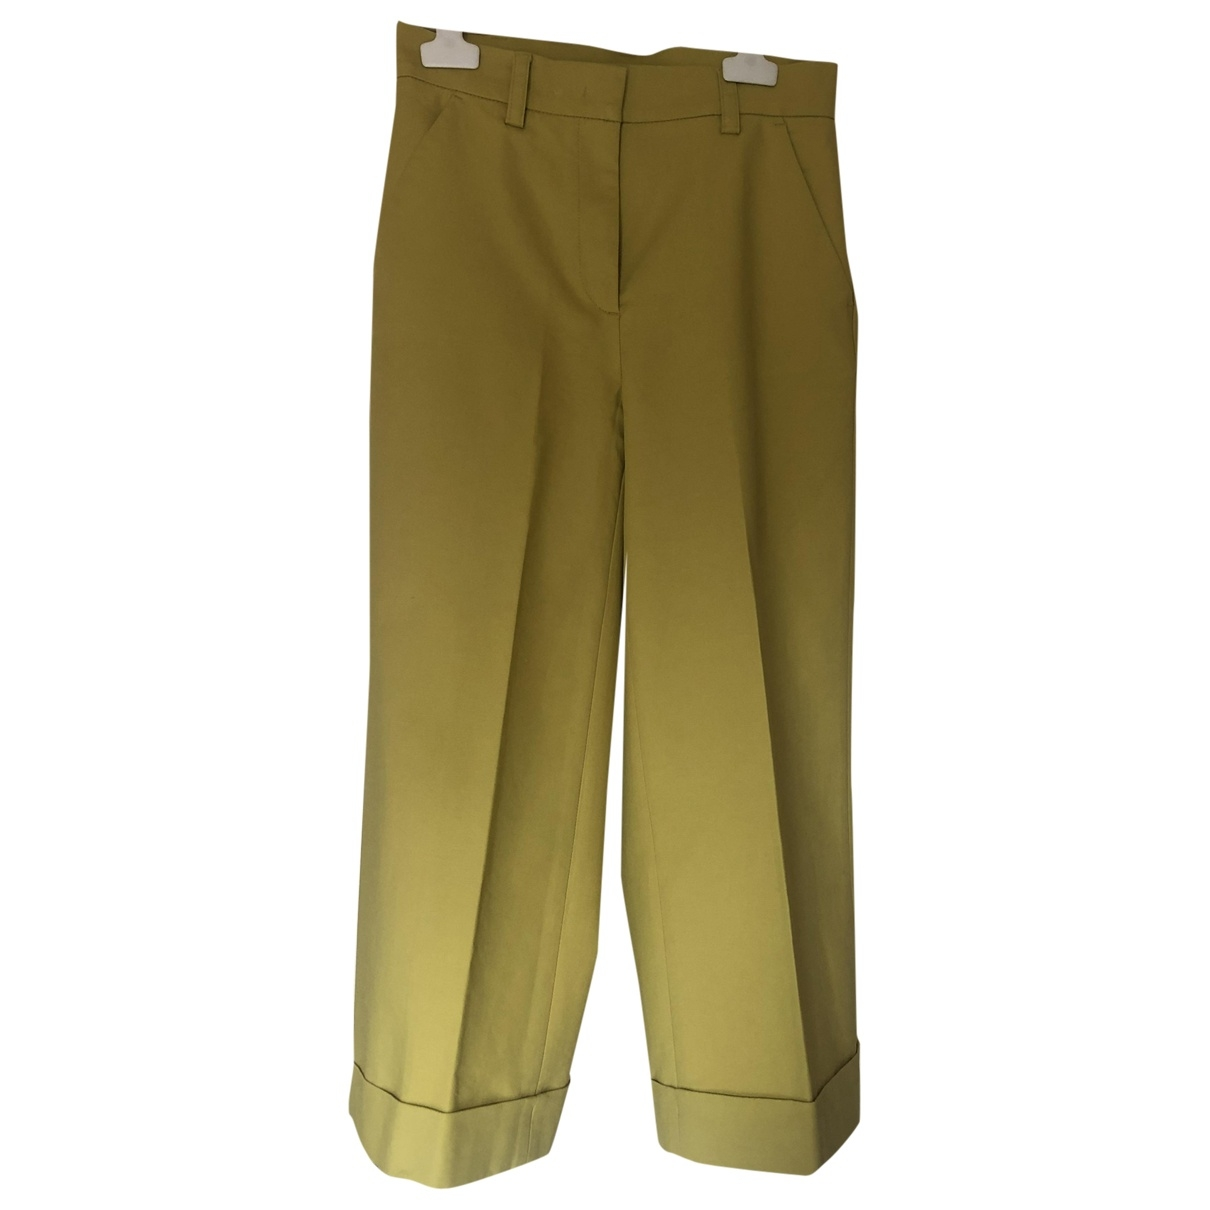 Moncler \N Yellow Cotton Trousers for Women 38 IT